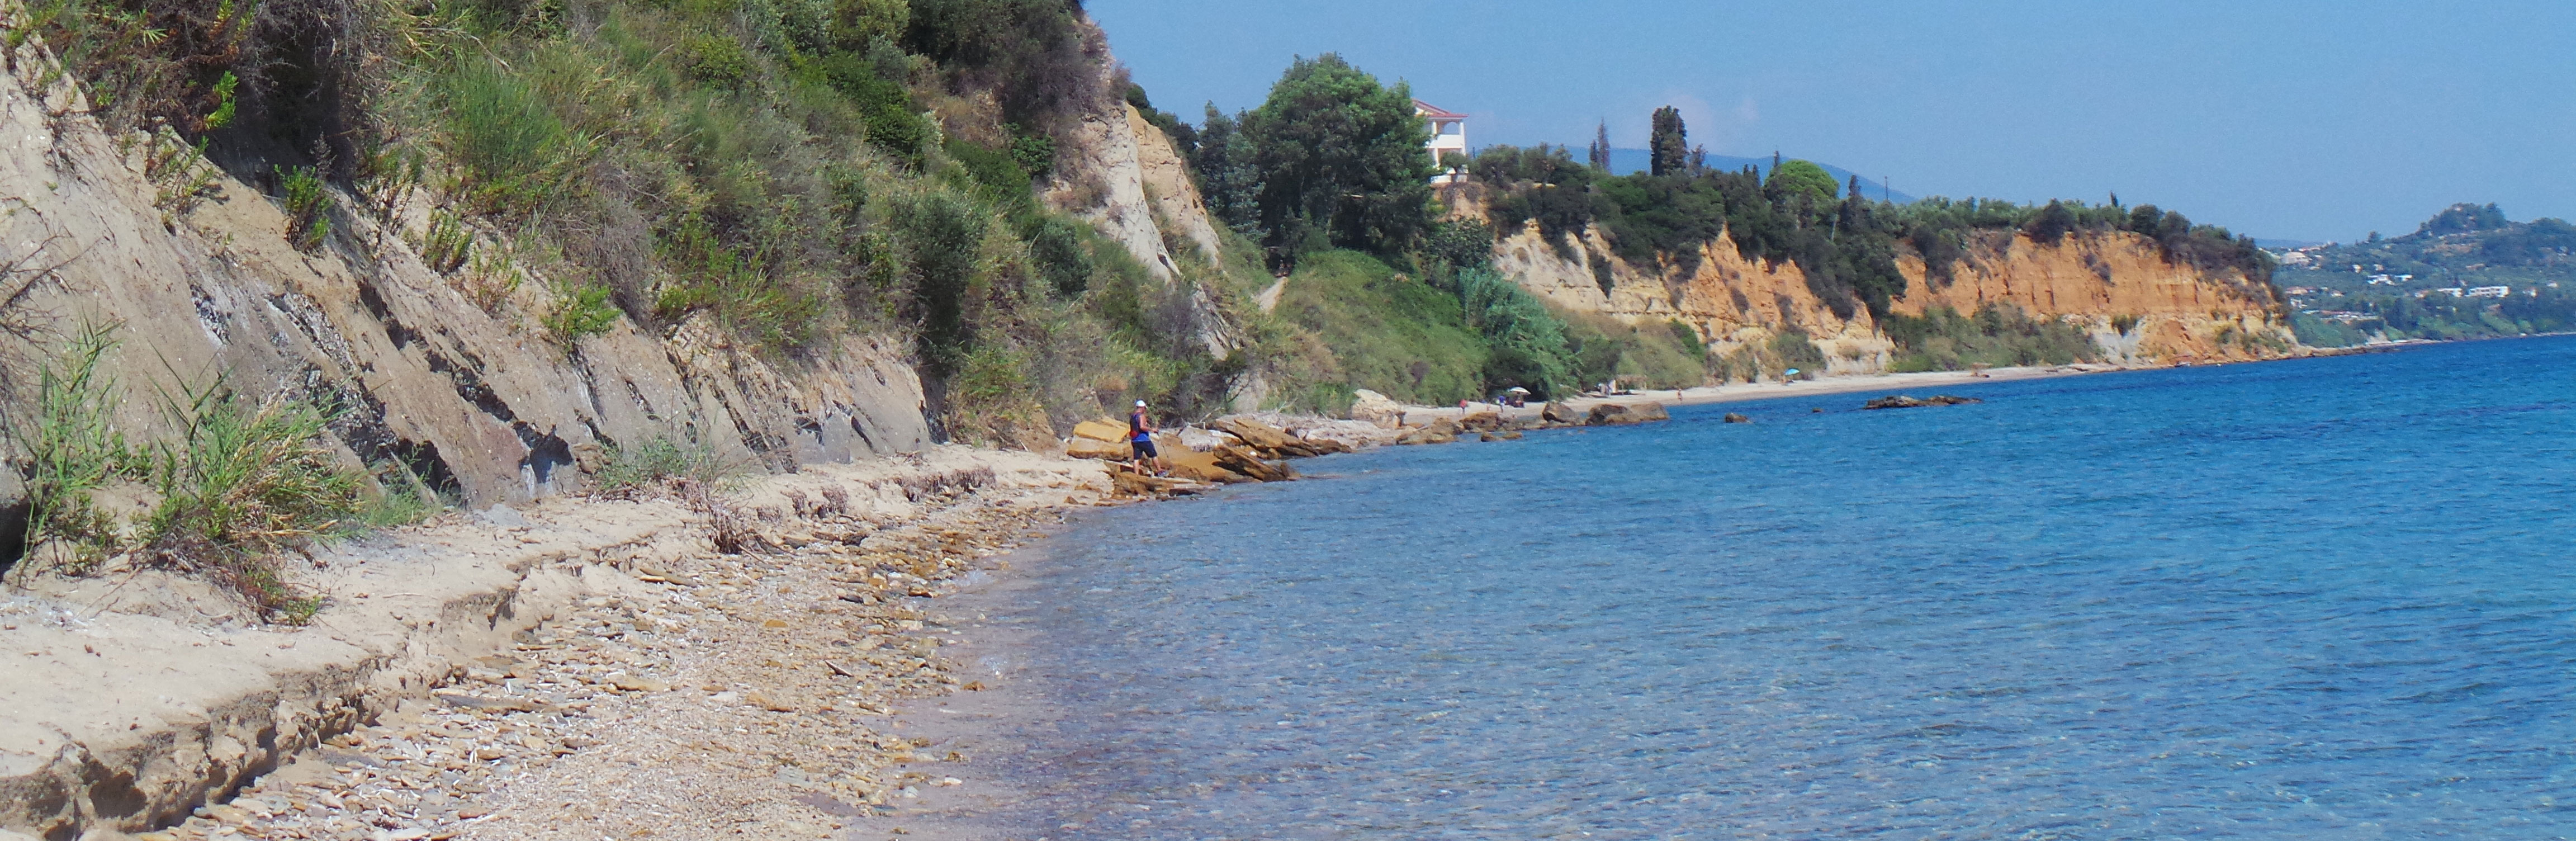 walking-messinia-koroni-2